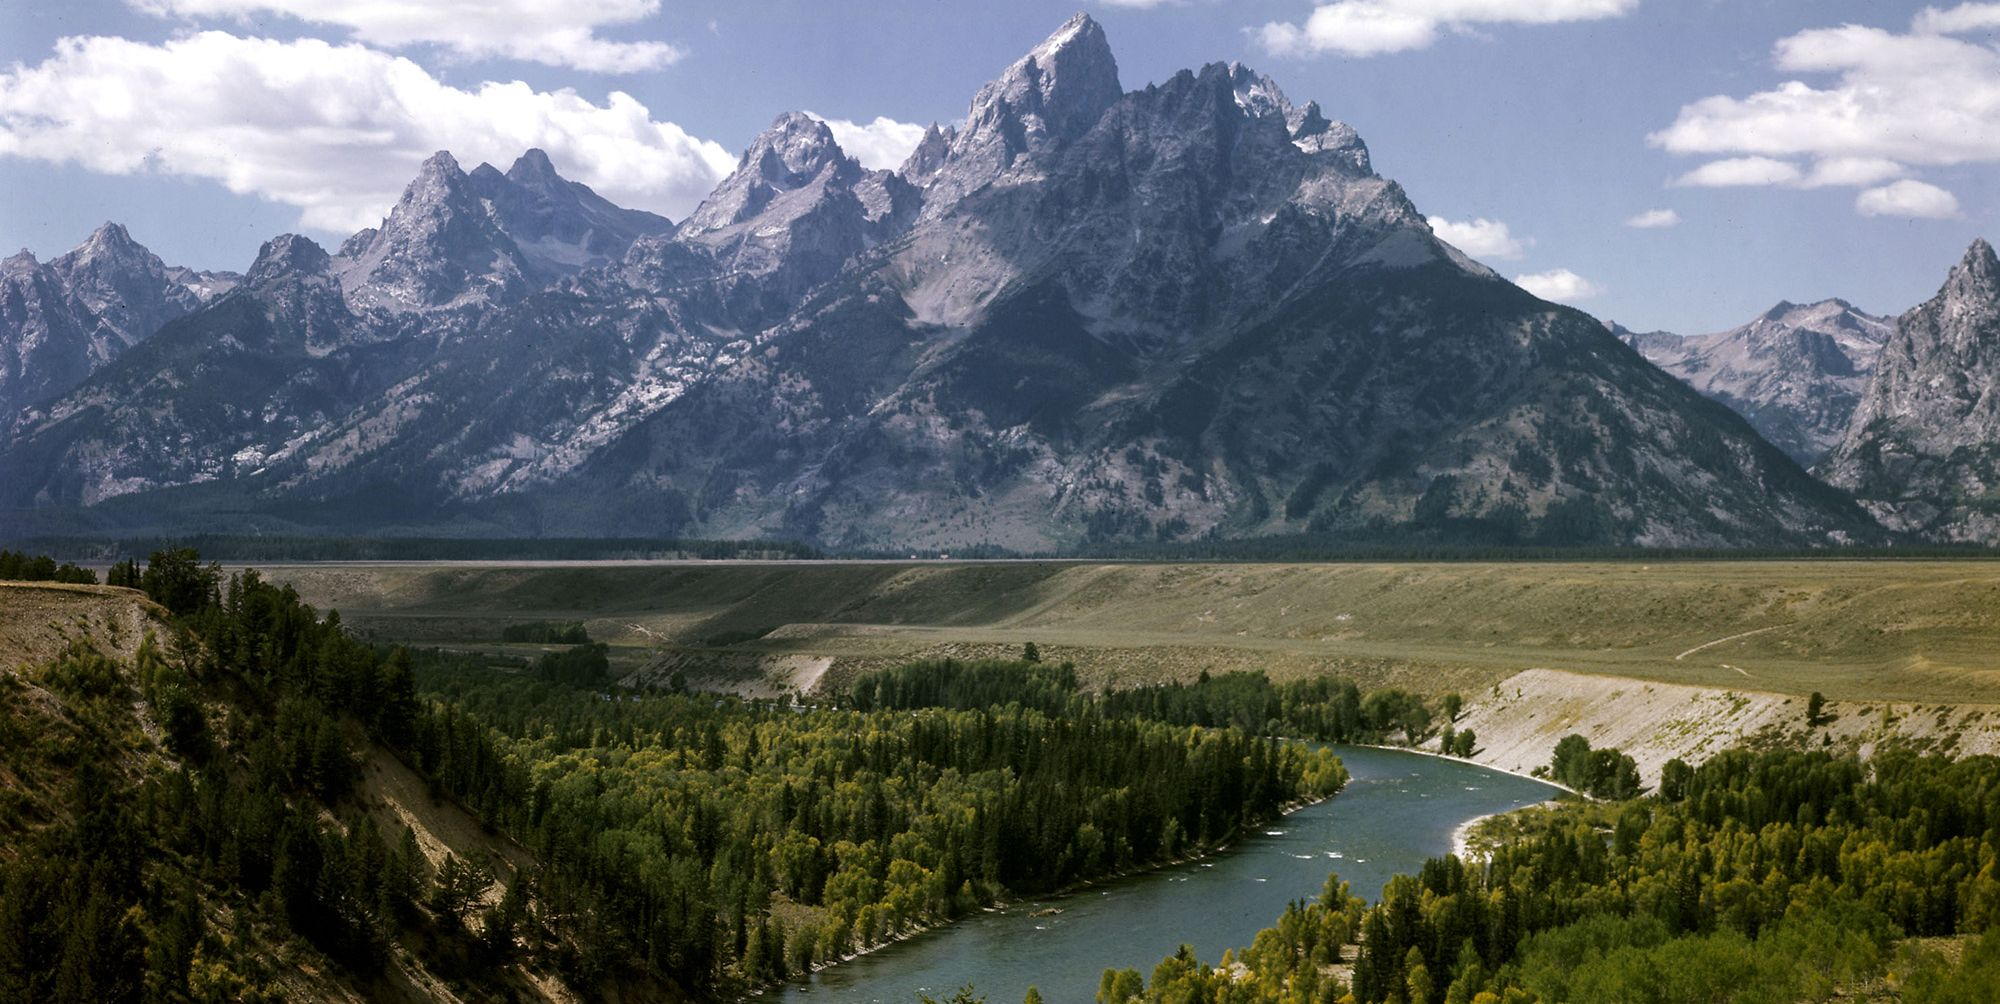 Snake River with the Grand Tetons in the